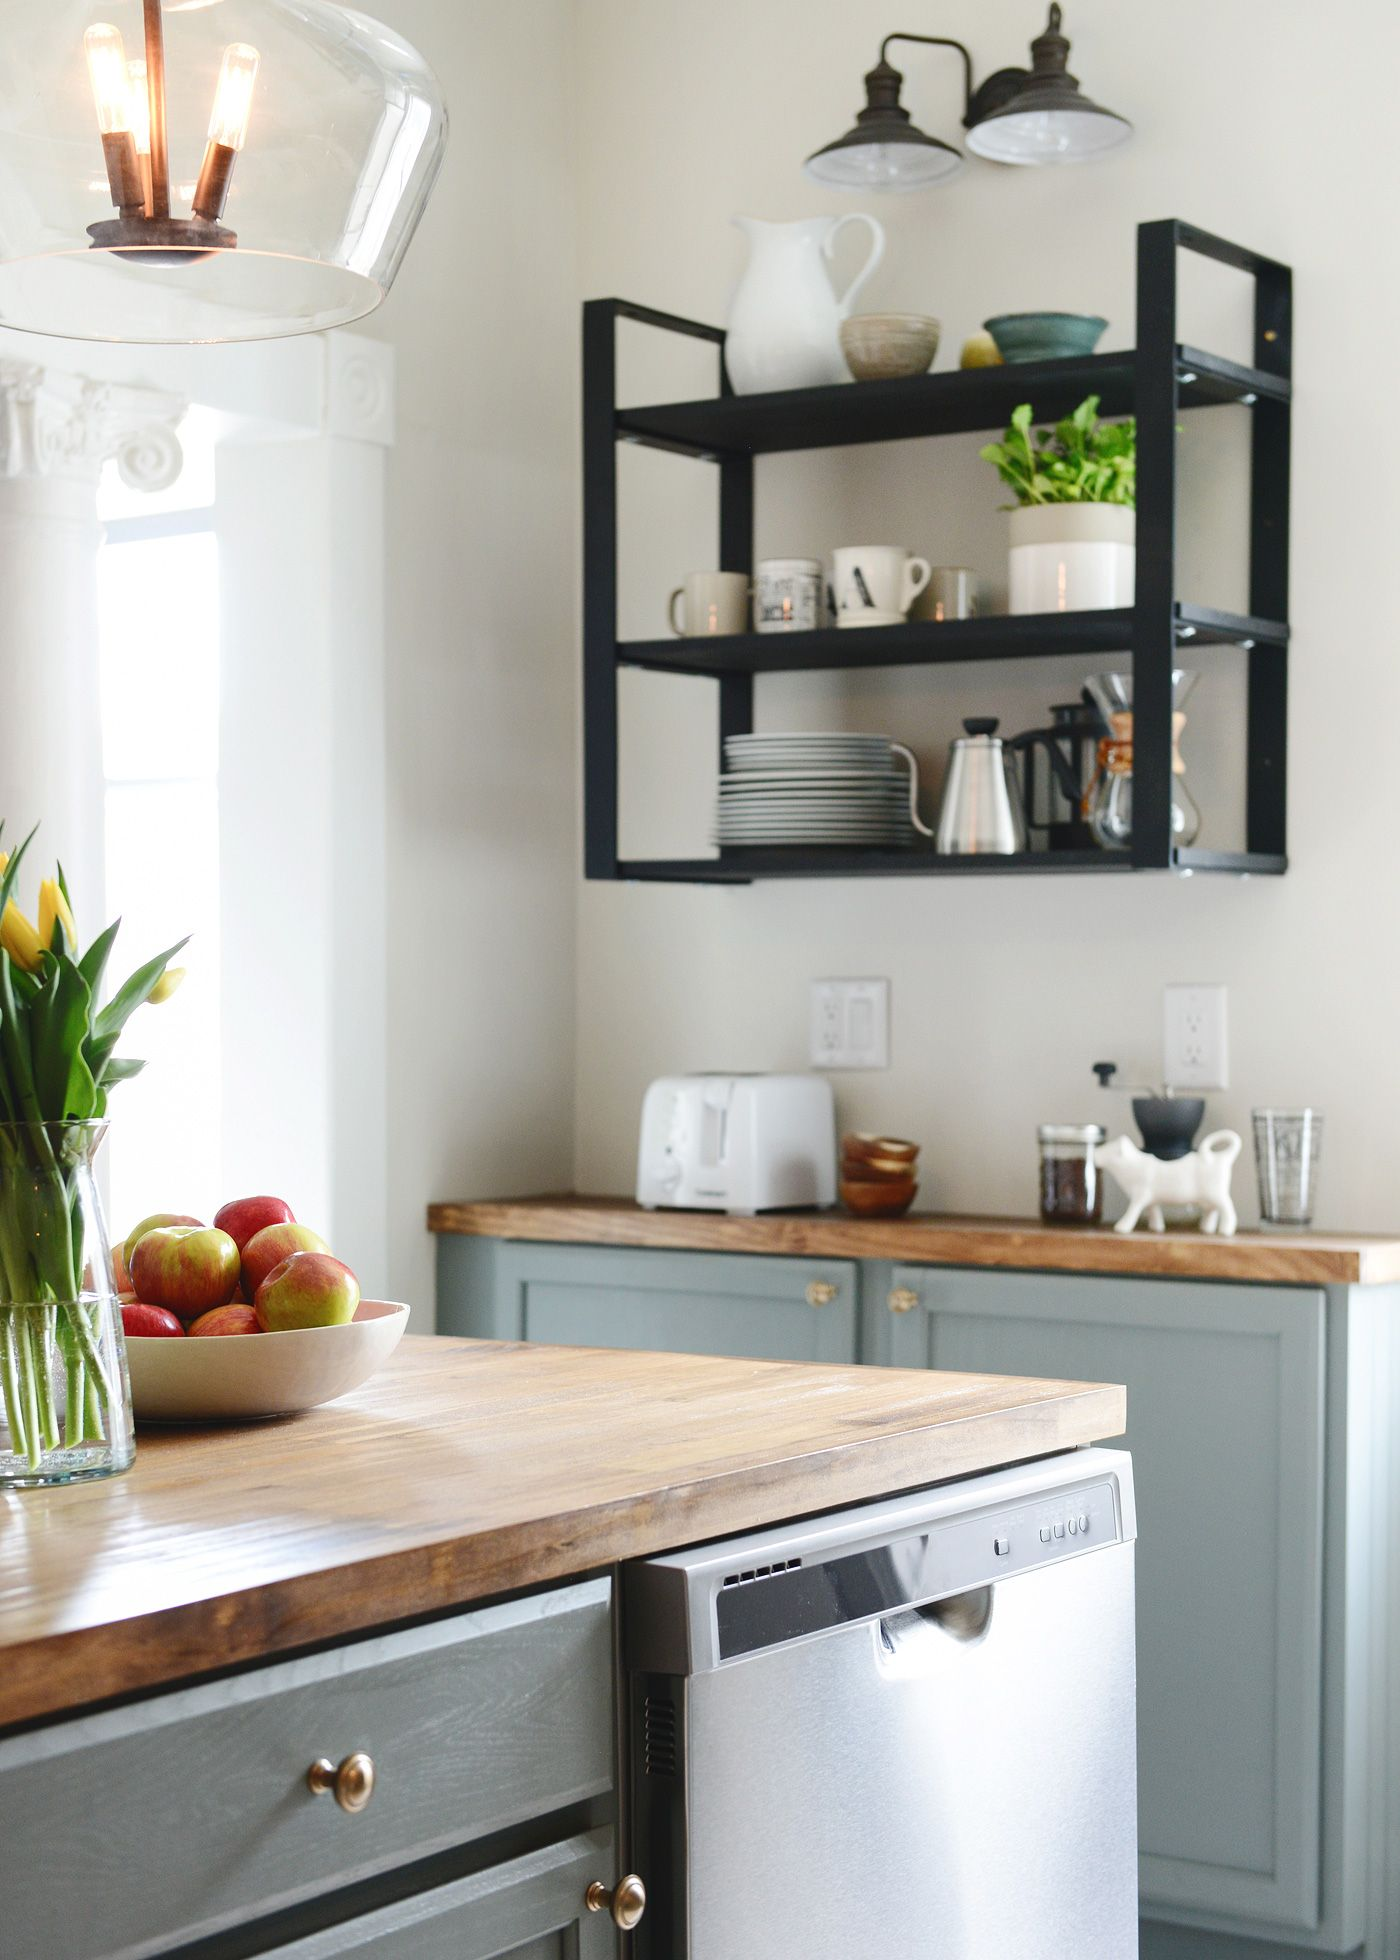 Those Shelves For The Dining Room Via 100 Year Old Home Gets A 3 Day Kitchen Makeover For Less Than 5 Kitchen Remodel Small Kitchen Makeover Kitchen Remodel